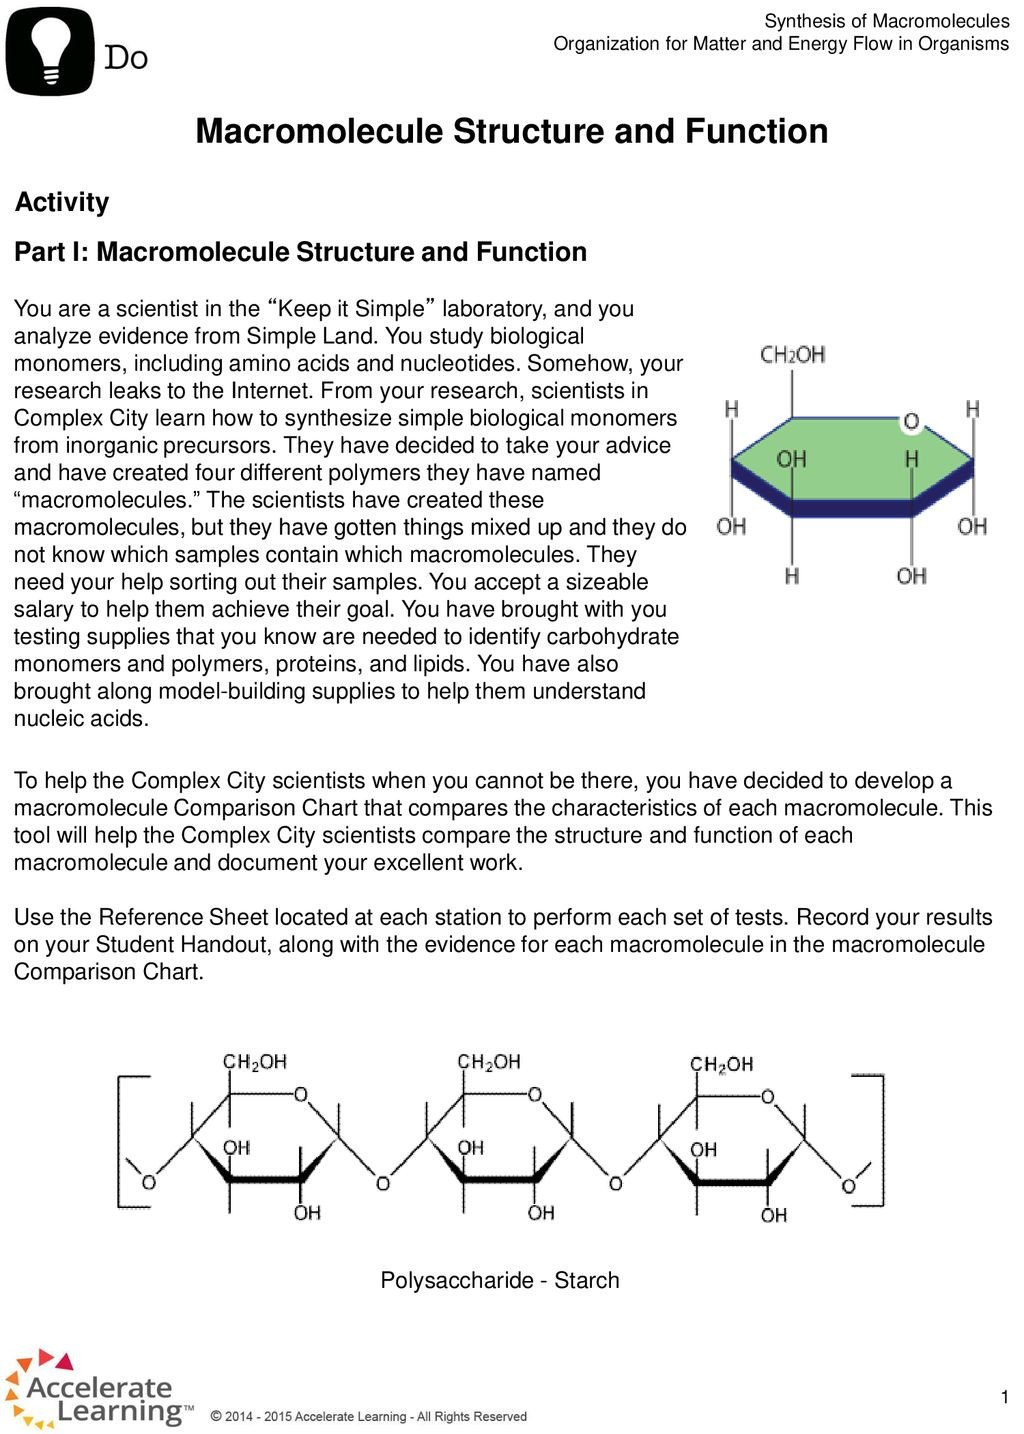 Macromolecule Structure and Function